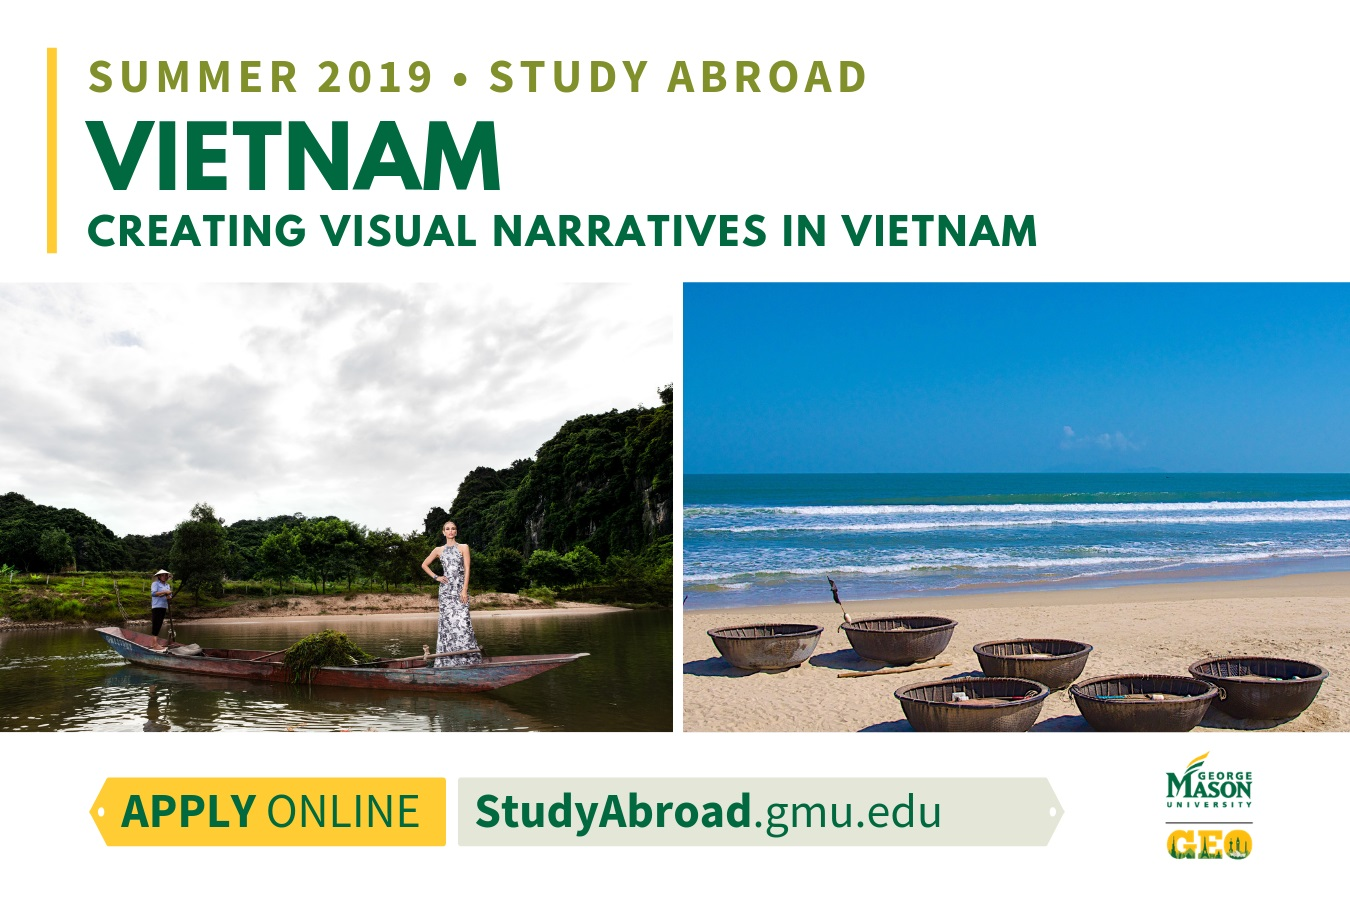 Information regarding Vietnam Narratives is as follows Start date (when you would like your content to be posted) is January 08 2019 and End Date  (when you would like your content to be removed from the screens) is March 10 2019 and Name is Achim Loch and Email is aloch@gmu.edu and File is Browse and File Name is vietnamnarratives2_comp.jpg and Panel for your ad to be displayed is Main and Affiliation is Mason Department and Group Name is The Global Education Office and Name of Ad/Event is Vietnam Narratives and